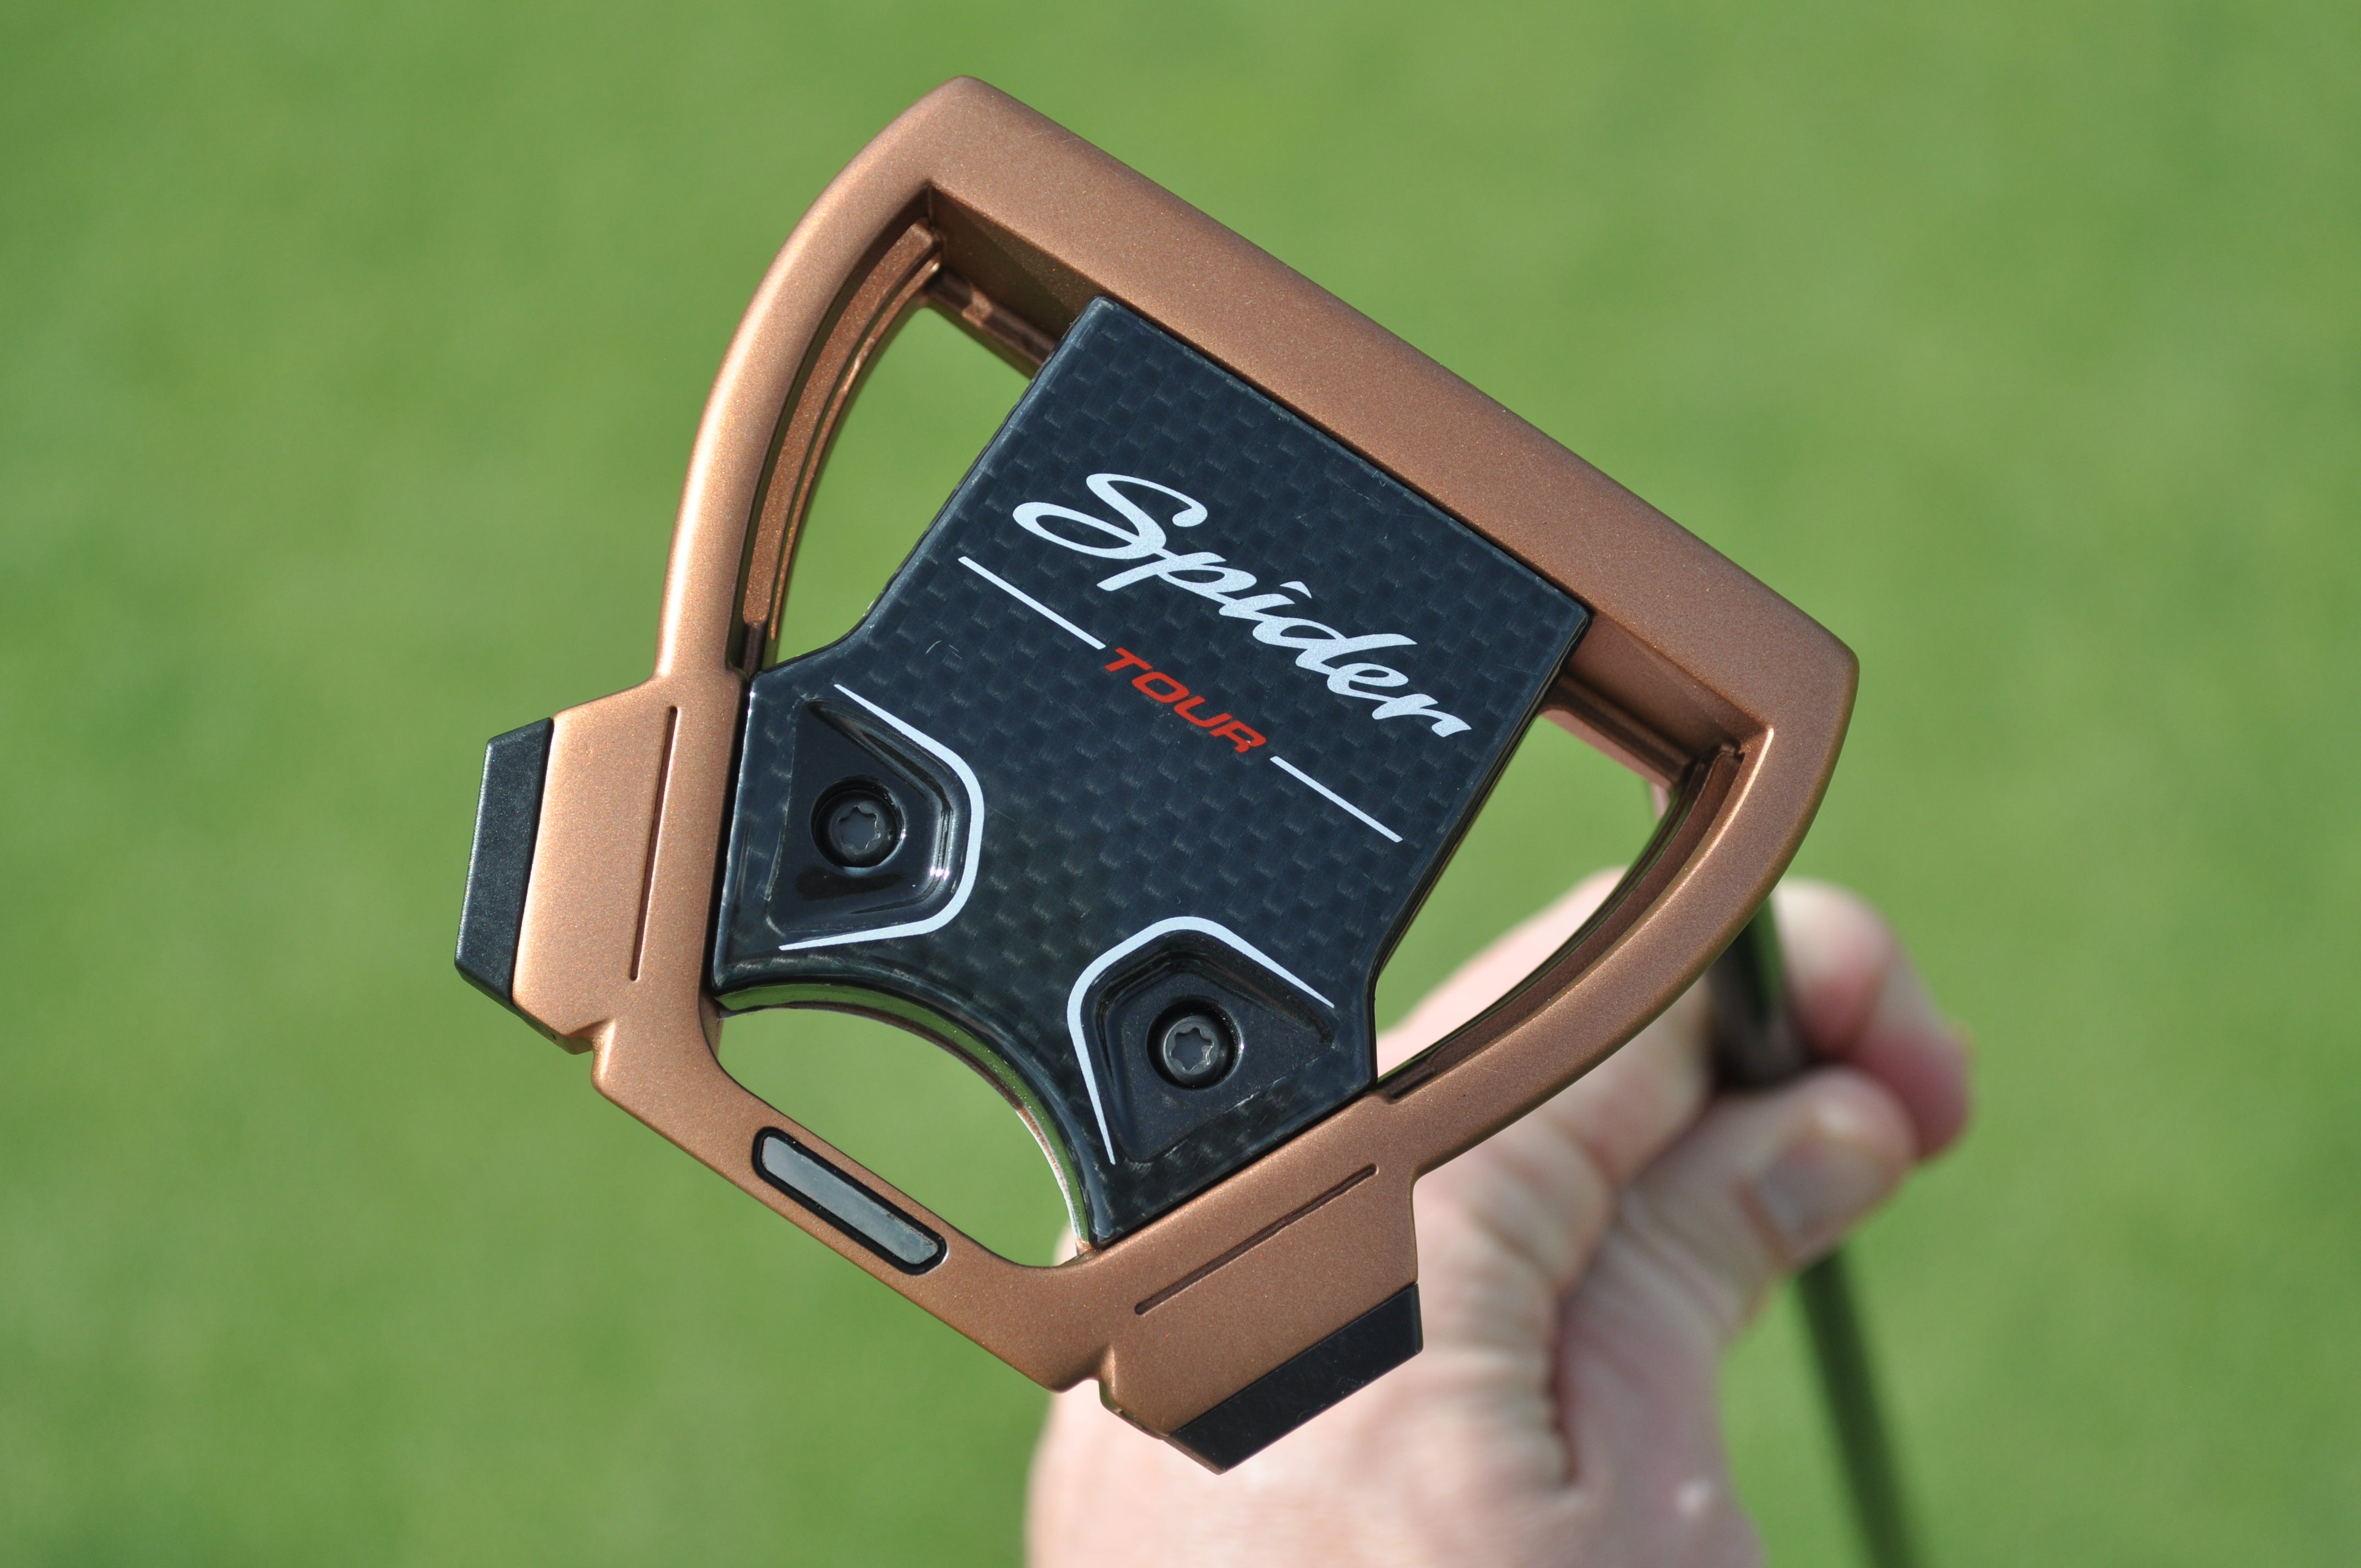 Dustin Johnson tested TaylorMade's new Spider Tour putter with a cross-handed grip on Tuesday.